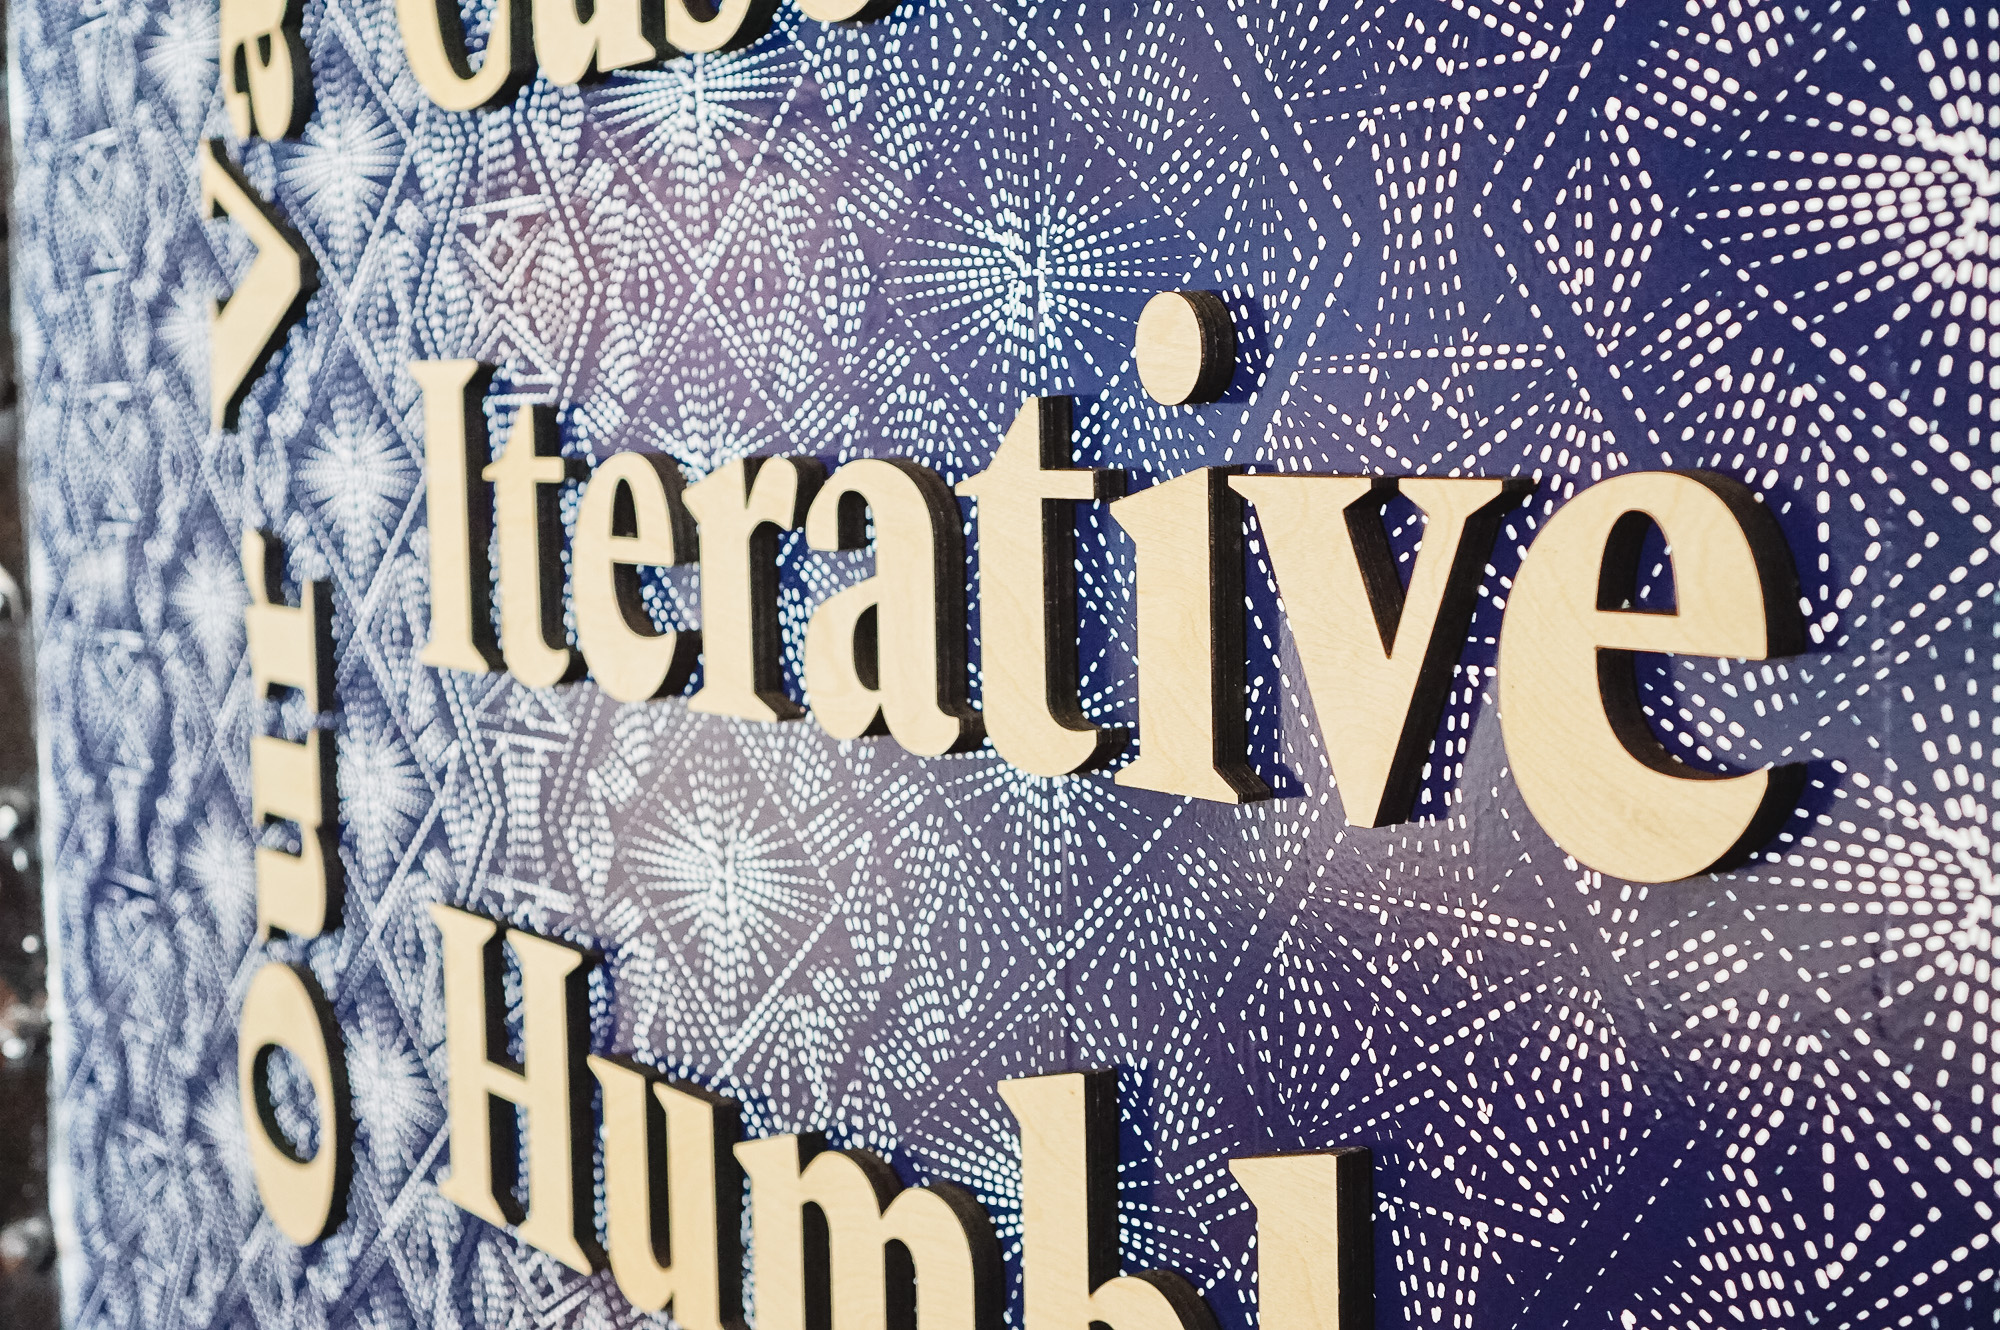 Light wood letters on blue geometric patterned wallpaper for the lobby of Zeus, a San Francisco based company providing beautiful, fully furnished homes for business travelers staying one month or longer.